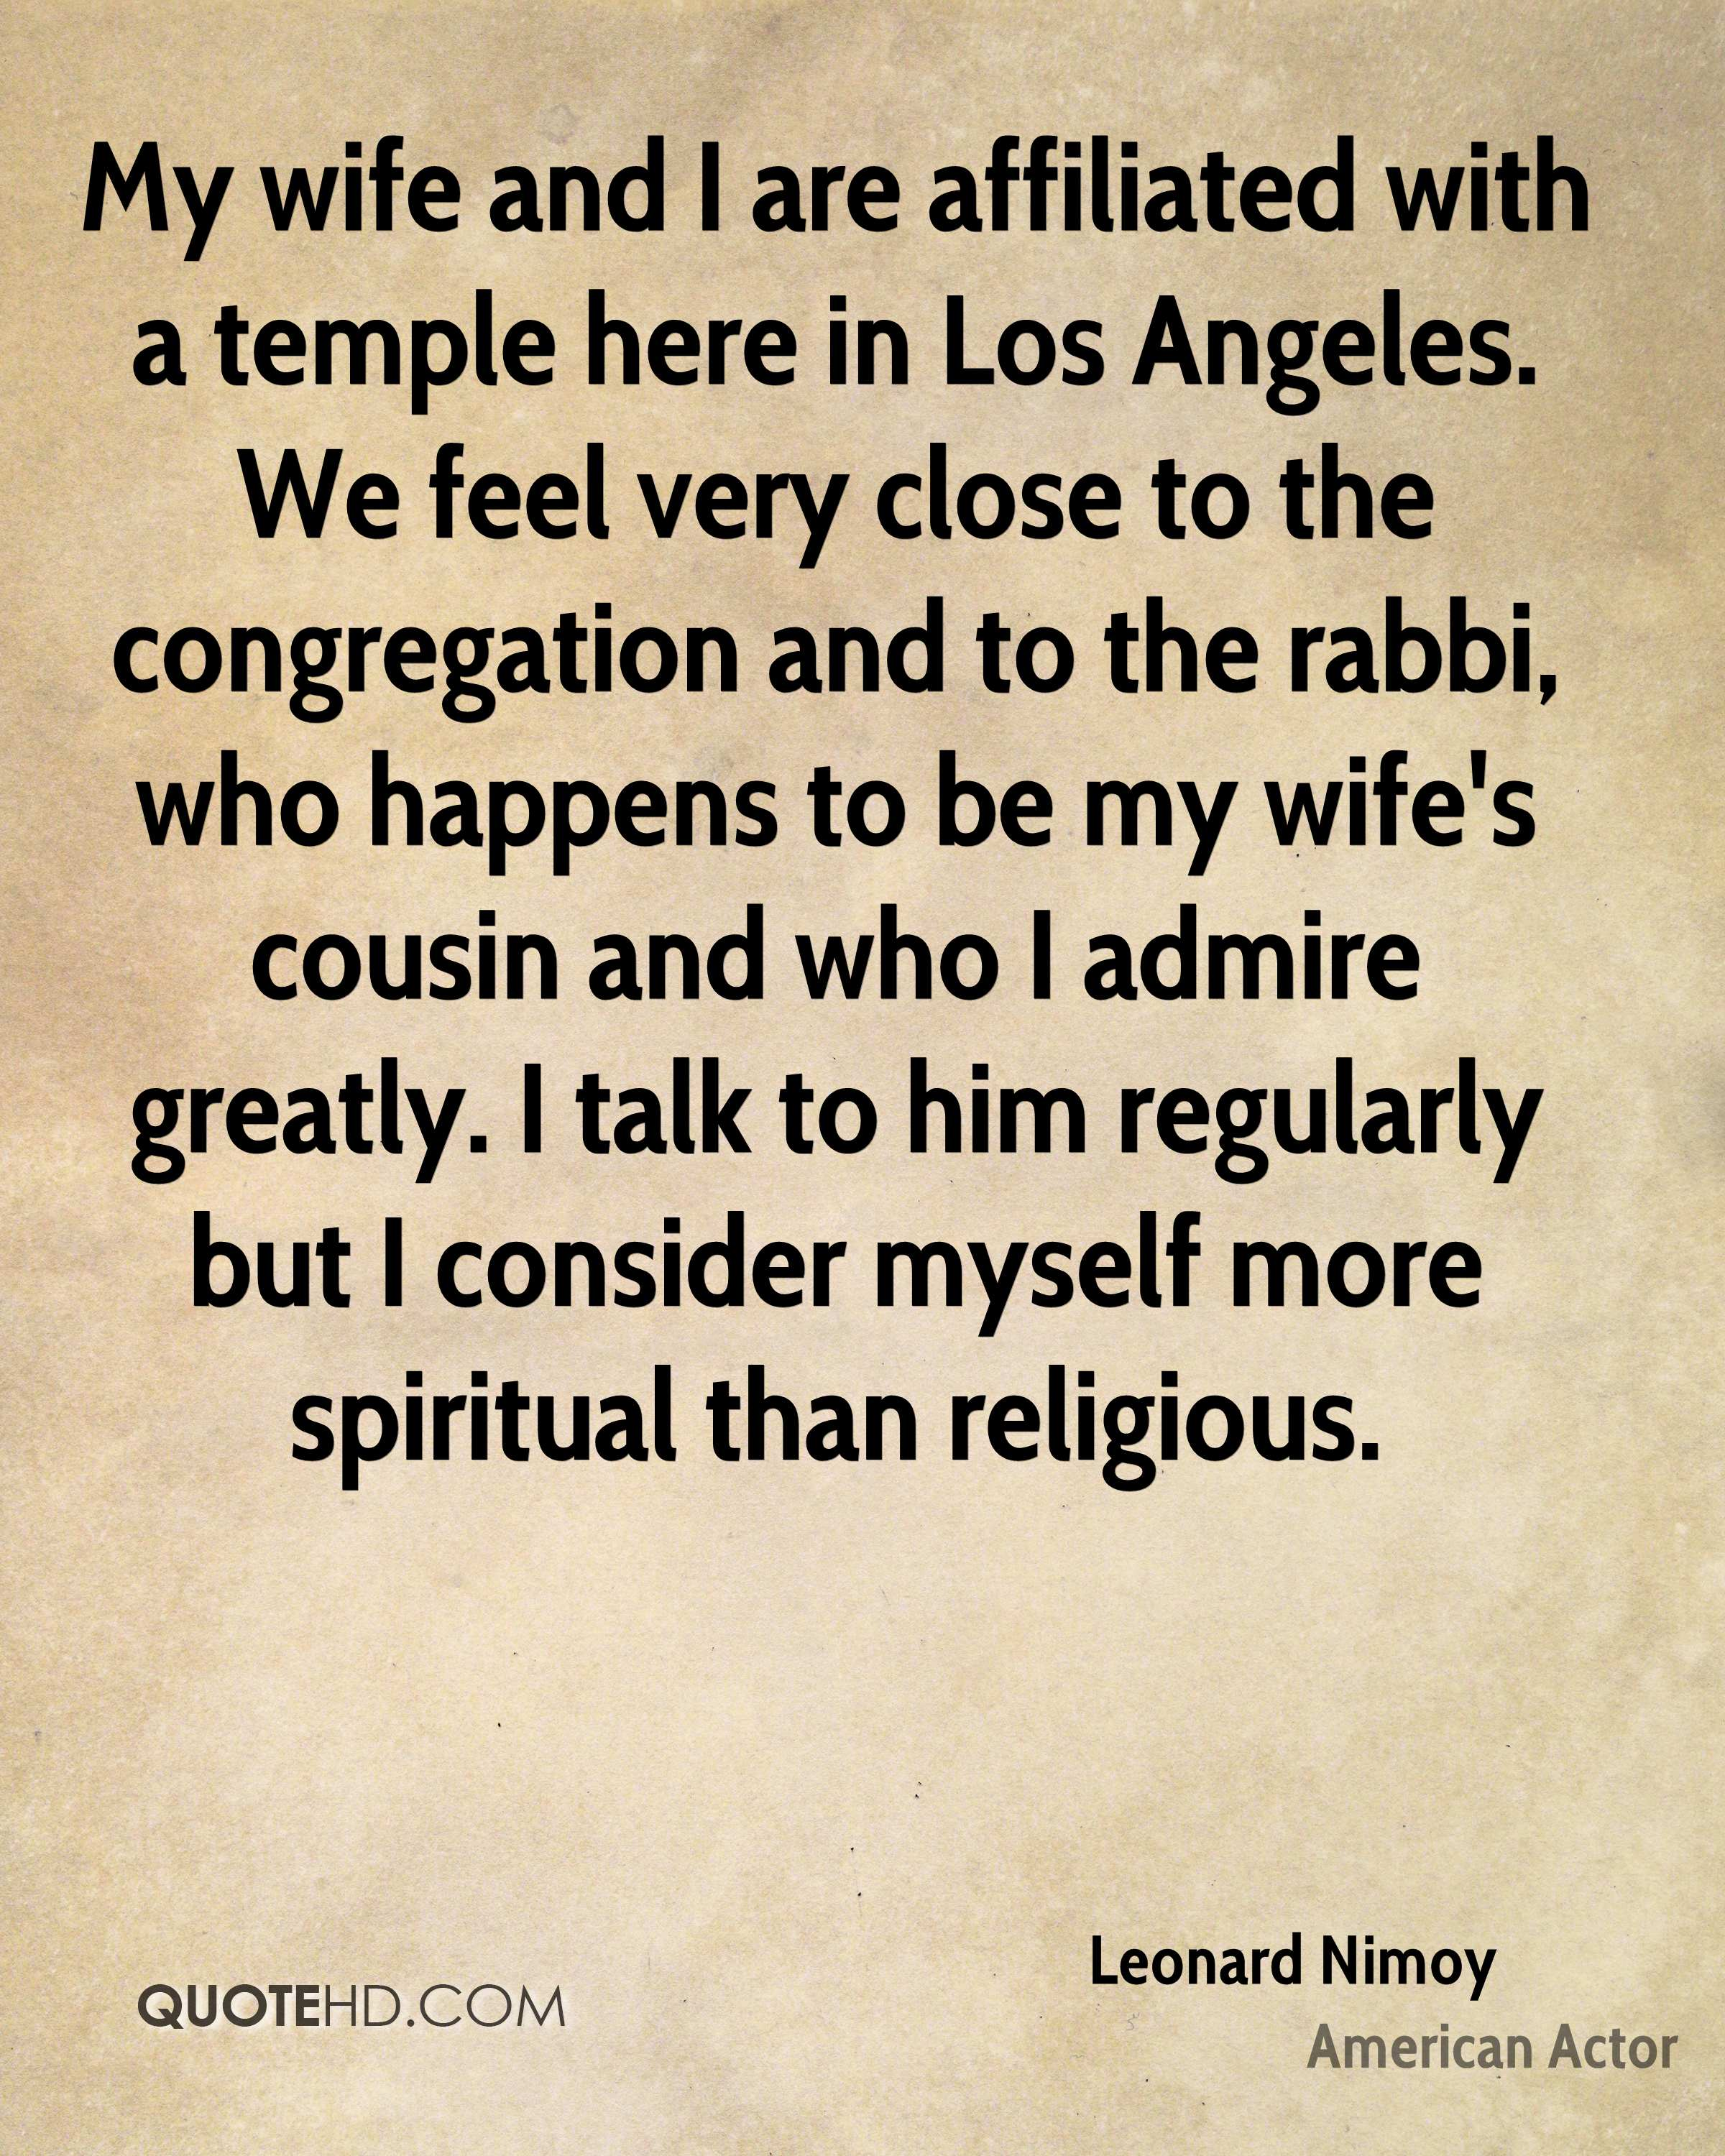 My wife and I are affiliated with a temple here in Los Angeles. We feel very close to the congregation and to the rabbi, who happens to be my wife's cousin and who I admire greatly. I talk to him regularly but I consider myself more spiritual than religious.